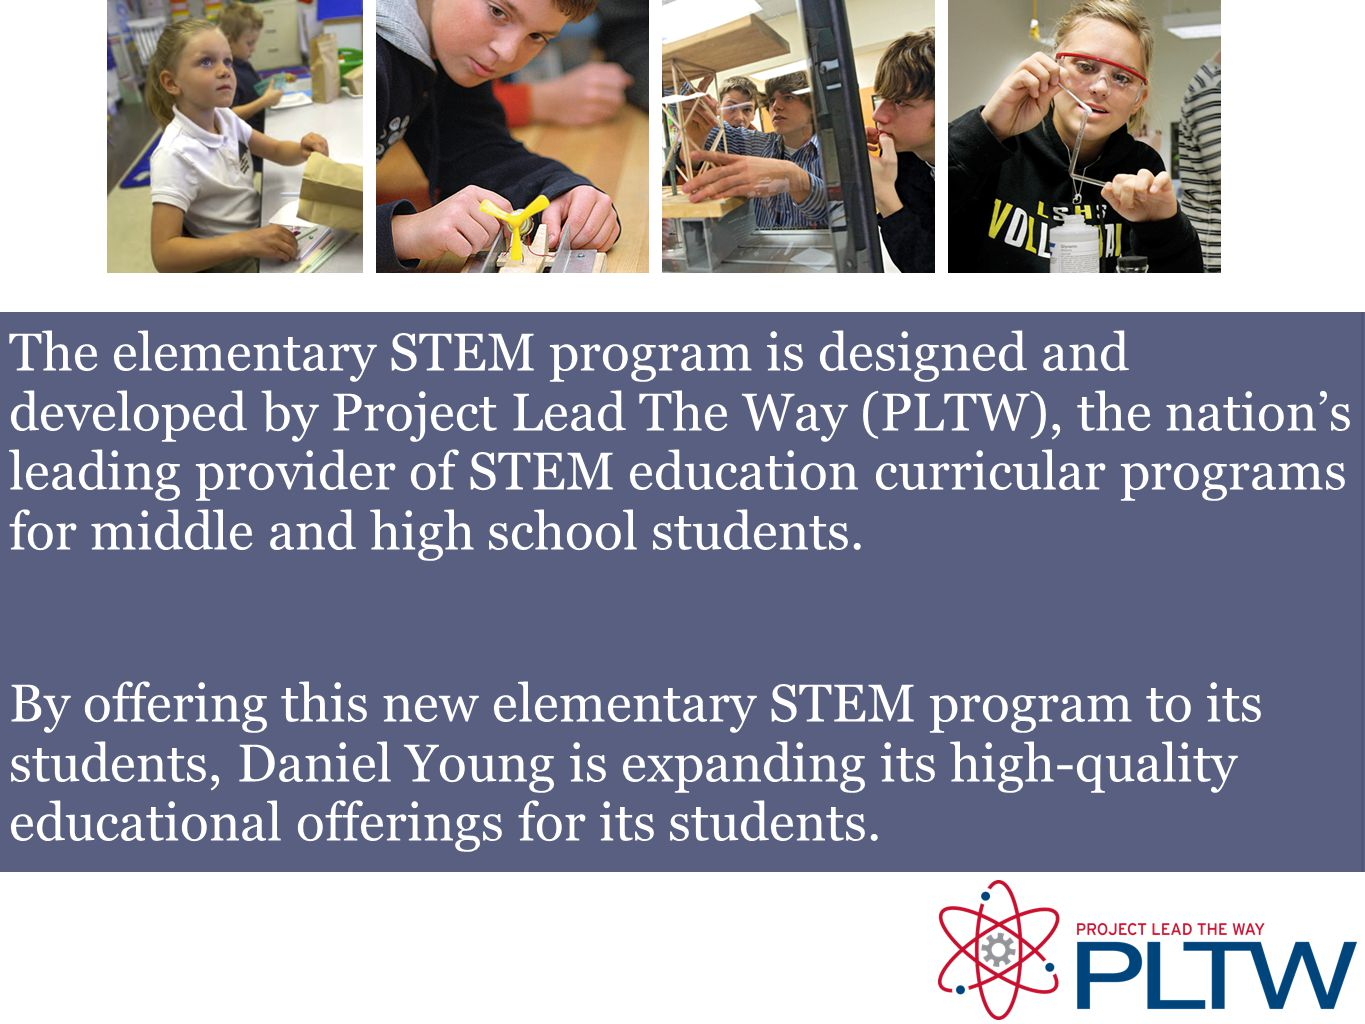 The elementary STEM program is designed and developed by Project Lead The Way (PLTW), the nation's leading provider of STEM education curricular progr